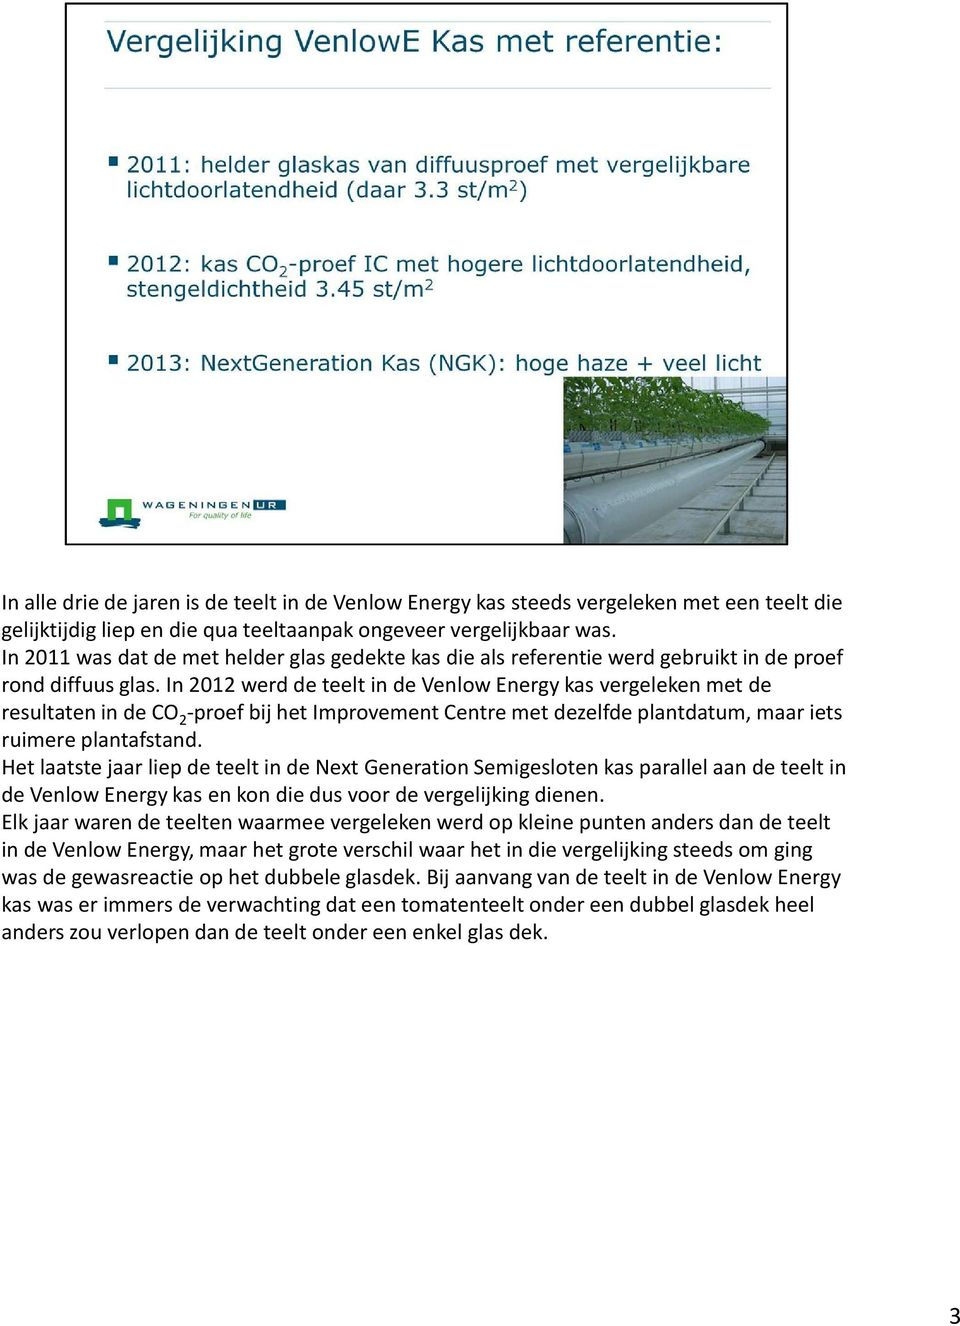 In 2012 werd de teelt in de VenlowEnergy kas vergeleken met de resultaten in de CO 2 -proef bij het ImprovementCentre met dezelfde plantdatum, maar iets ruimere plantafstand.